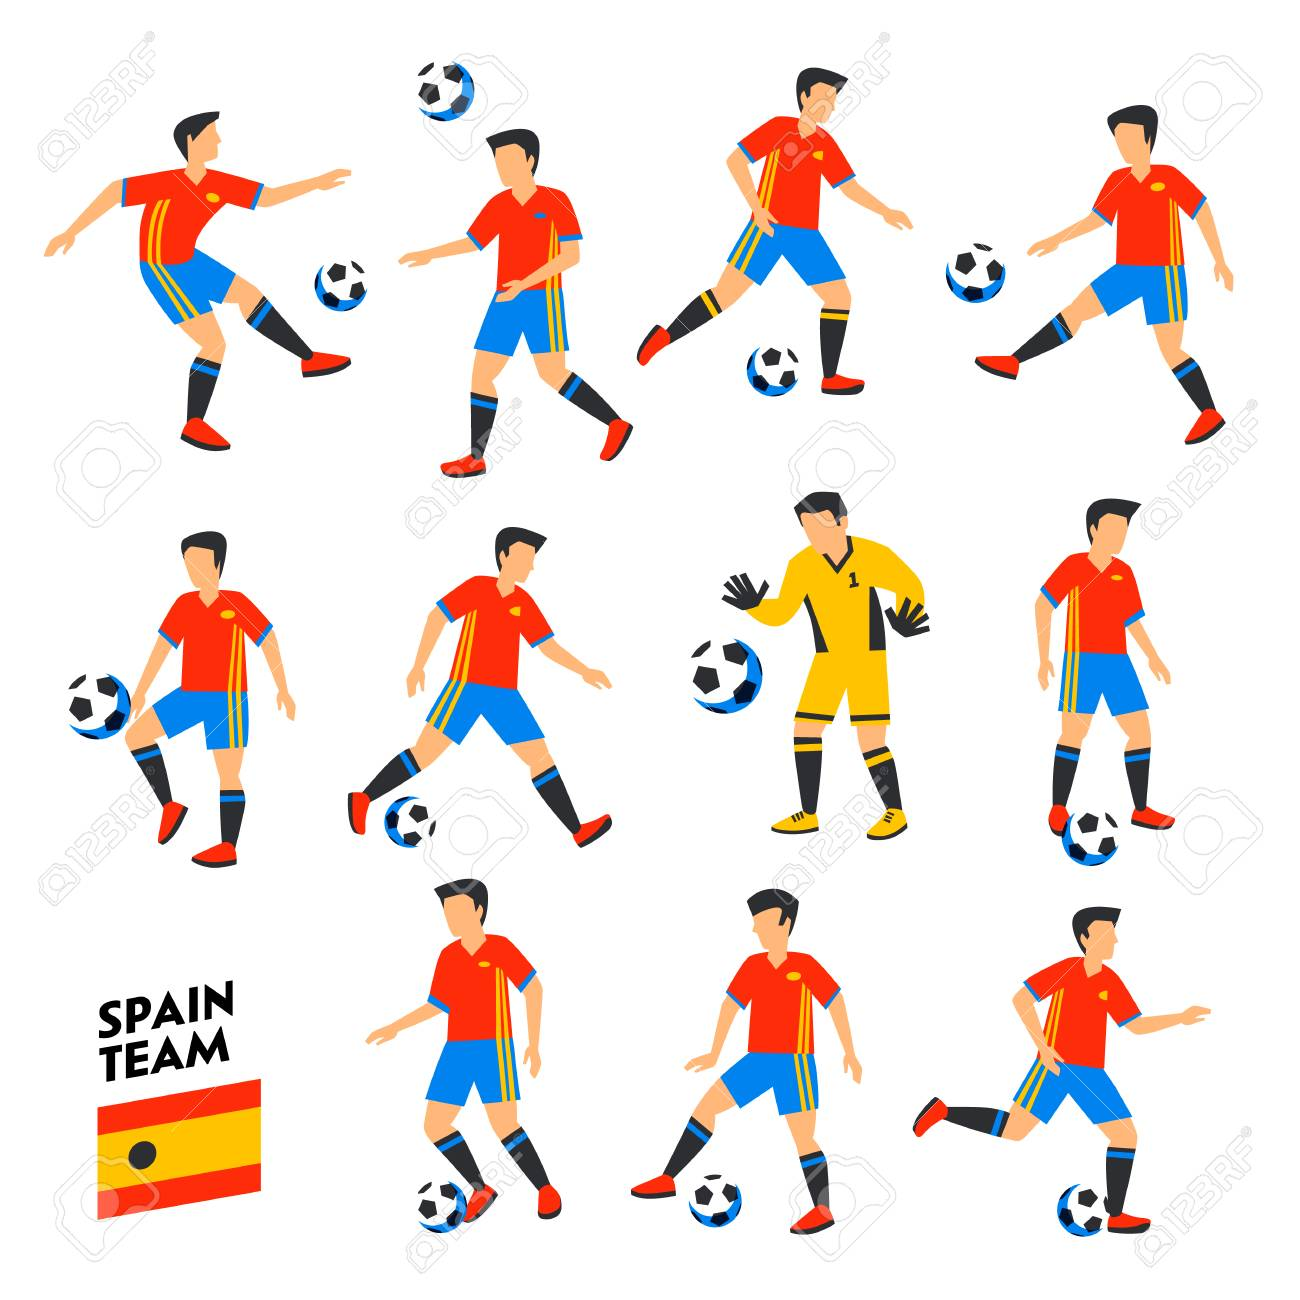 football team clipart 10 free Cliparts | Download images ... (1300 x 1300 Pixel)